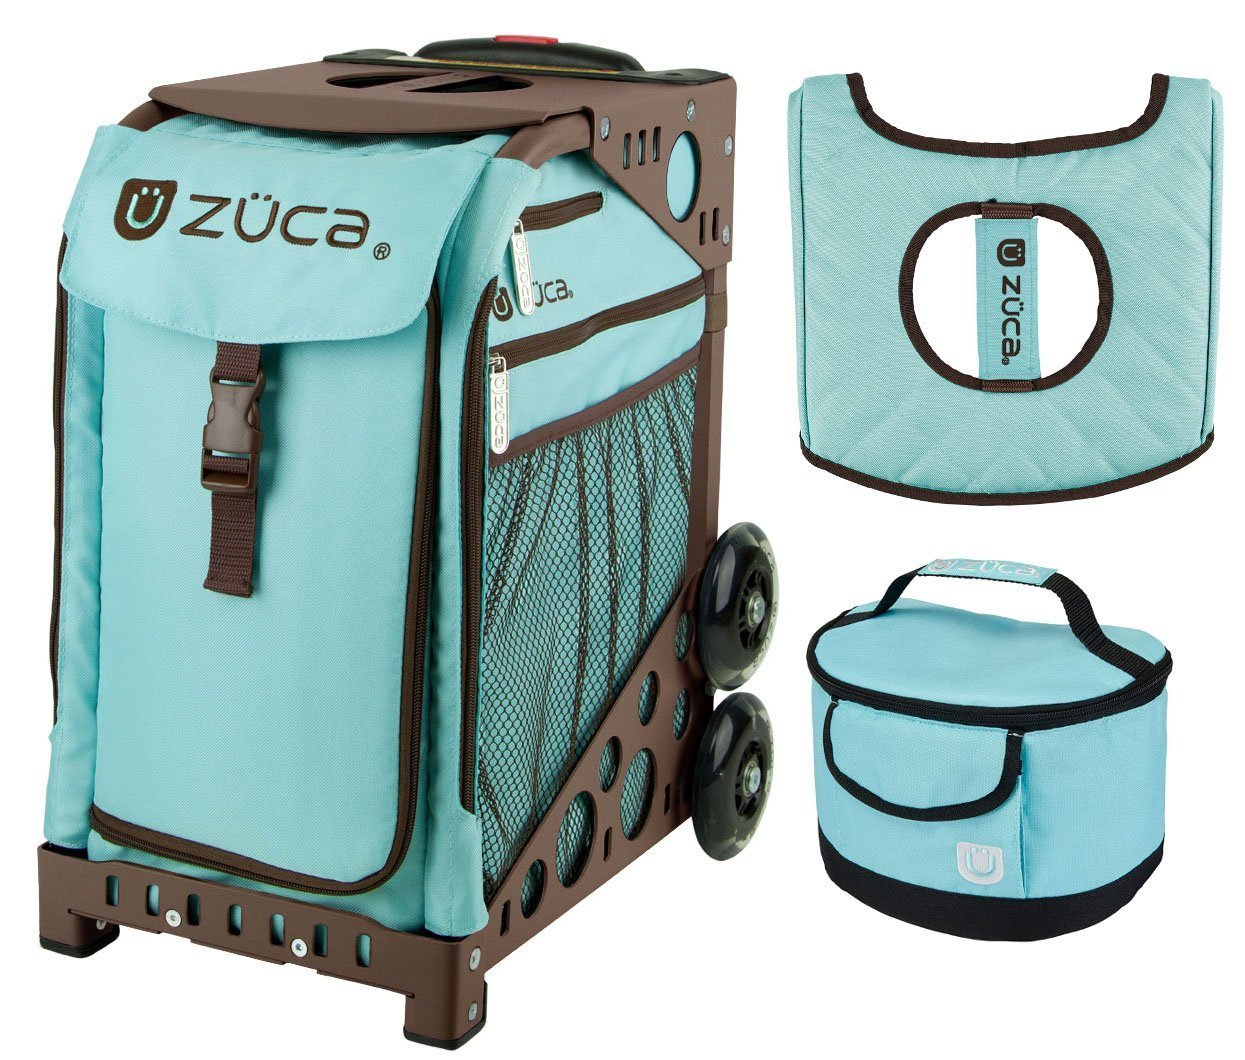 Zuca Sport Bag - Calypso with Gift Lunchbox and Seat Cover (Brown Frame) by ZUCA